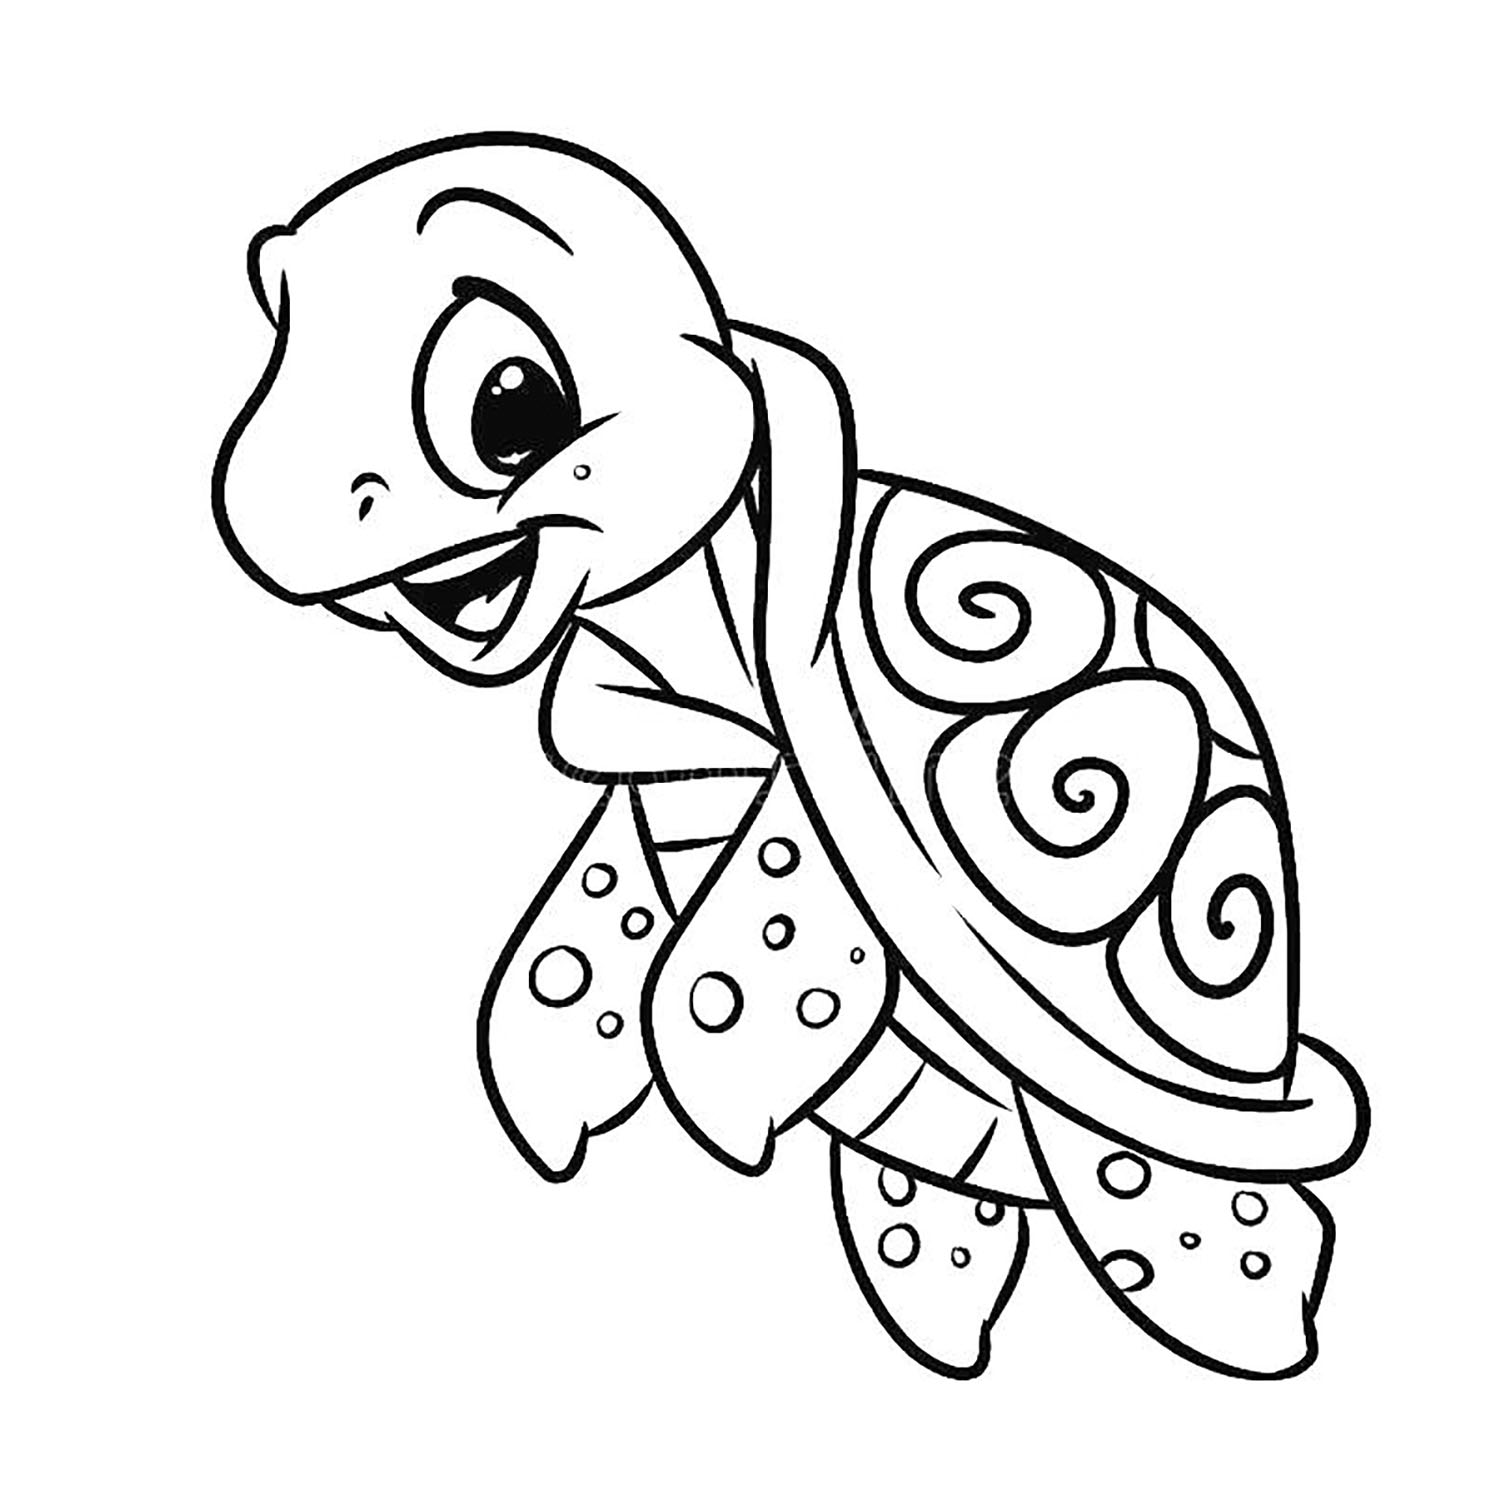 Turtles For Children Turtles Kids Coloring Pages